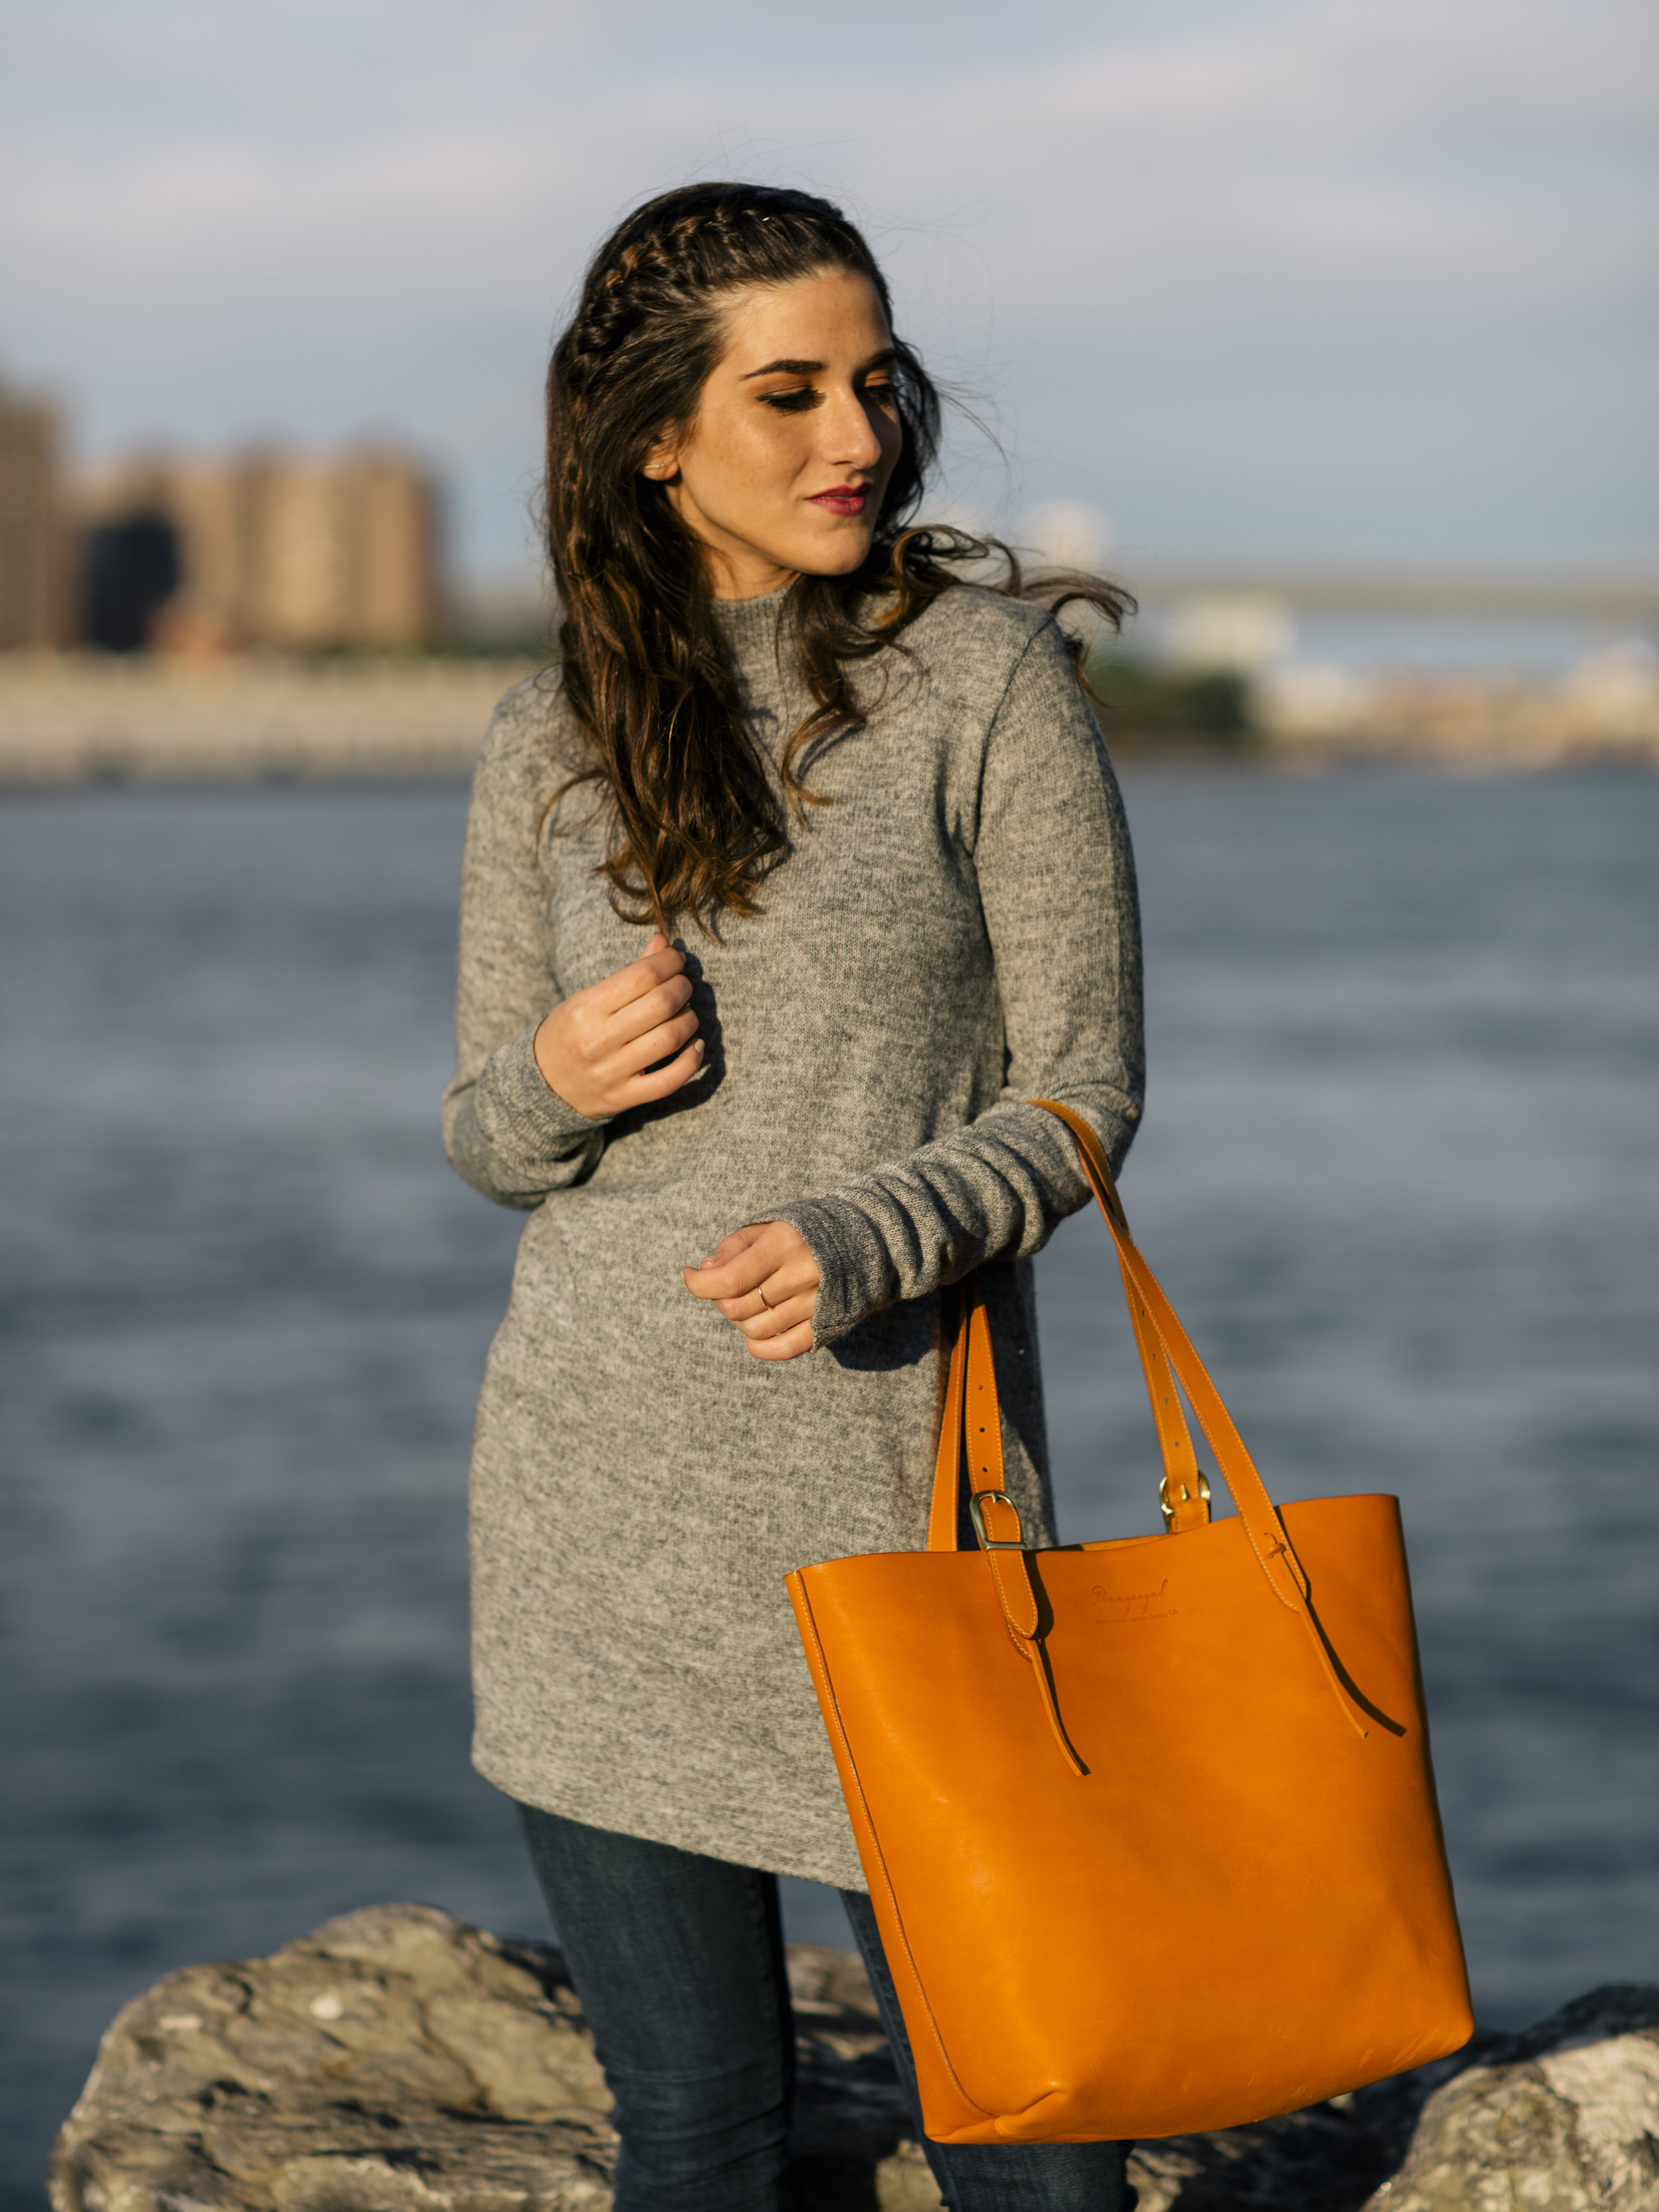 Long Grey Sweater Leopard Booties Louboutins & Love Fashion Blog Esther Santer NYC Street Style Blogger Outfit OOTD Trendy Hair Girl Women Leather Bag Jeans Denim Pretty Photoshoot Dumbo Brooklyn Shoes Fall Winter Shop Inspo Wear Beautiful Turtleneck.jpg